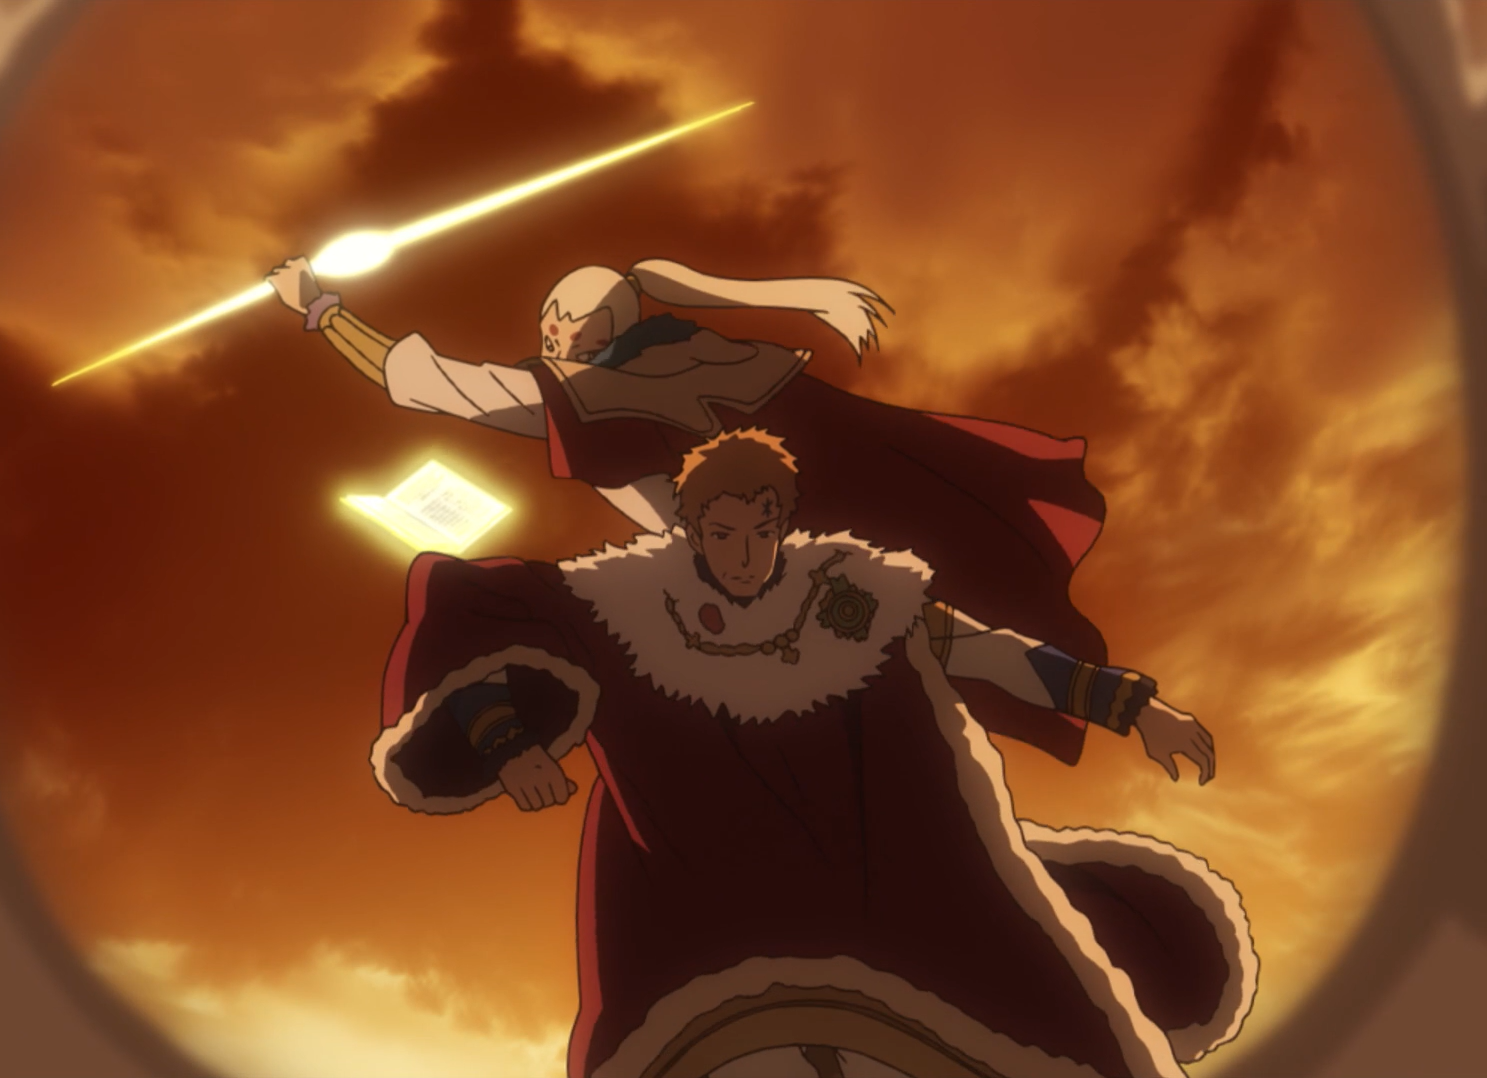 Julius Novachrono Vs Patolli Black Clover Wiki Fandom Customize your avatar with the julius nova chrono t julius nova chrono t and millions of other items. julius novachrono vs patolli black